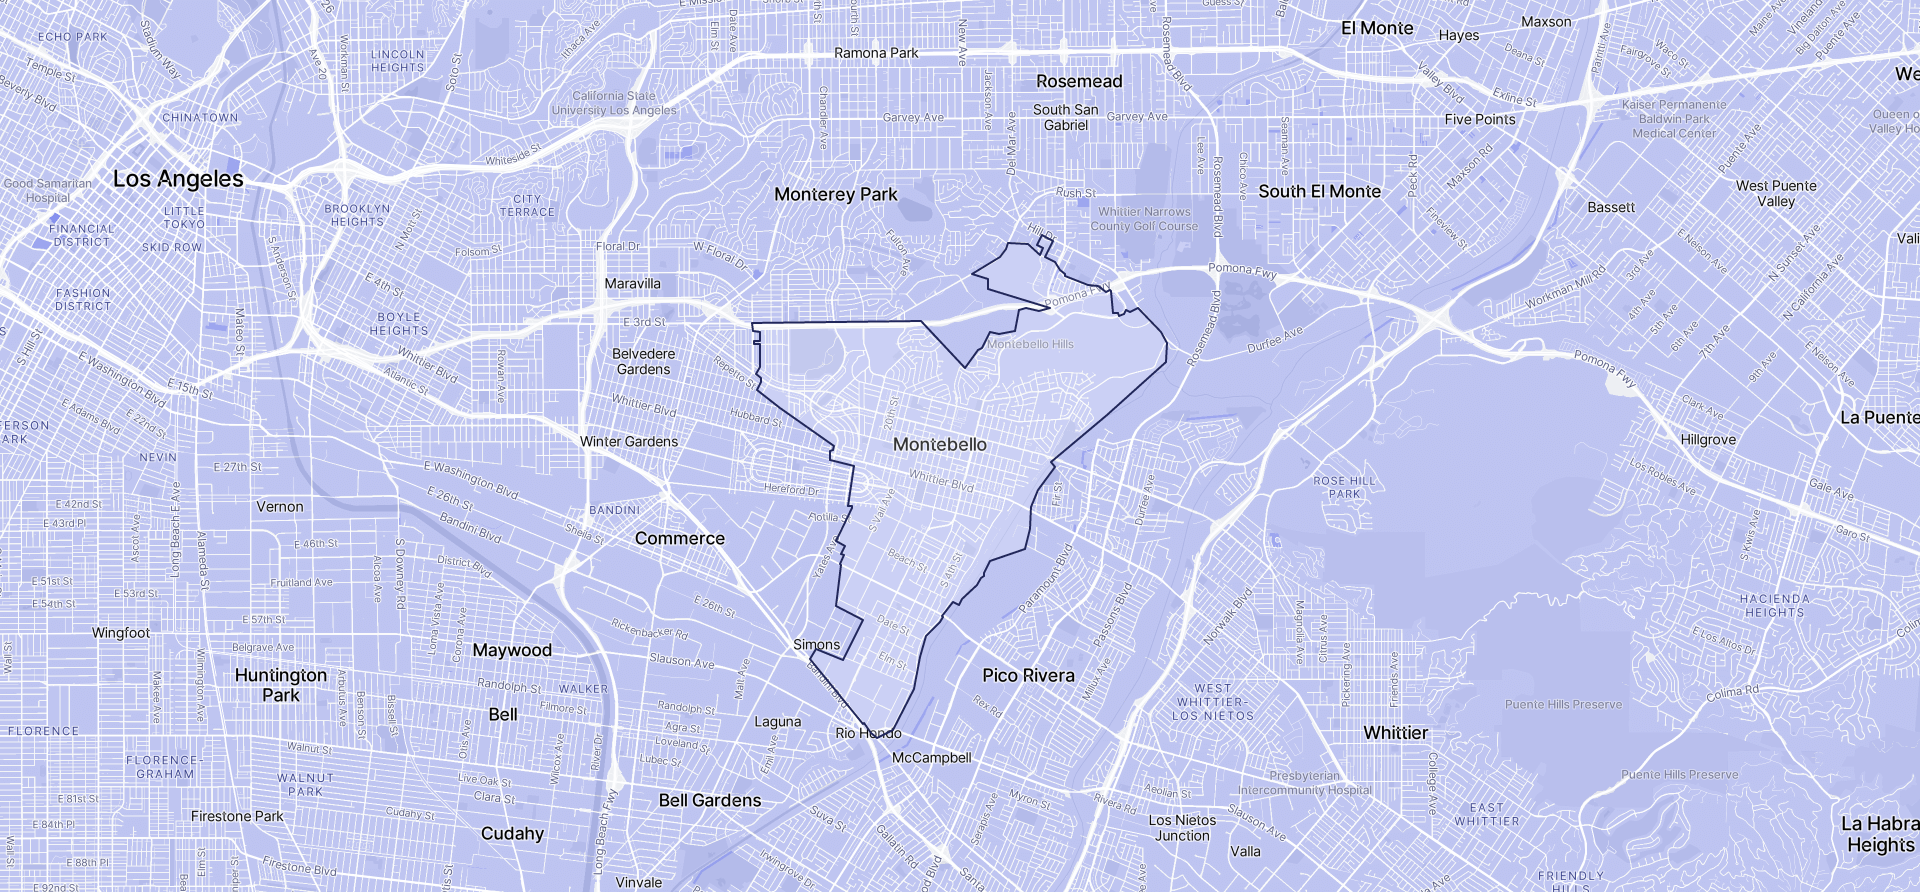 Image of Montebello boundaries on a map.